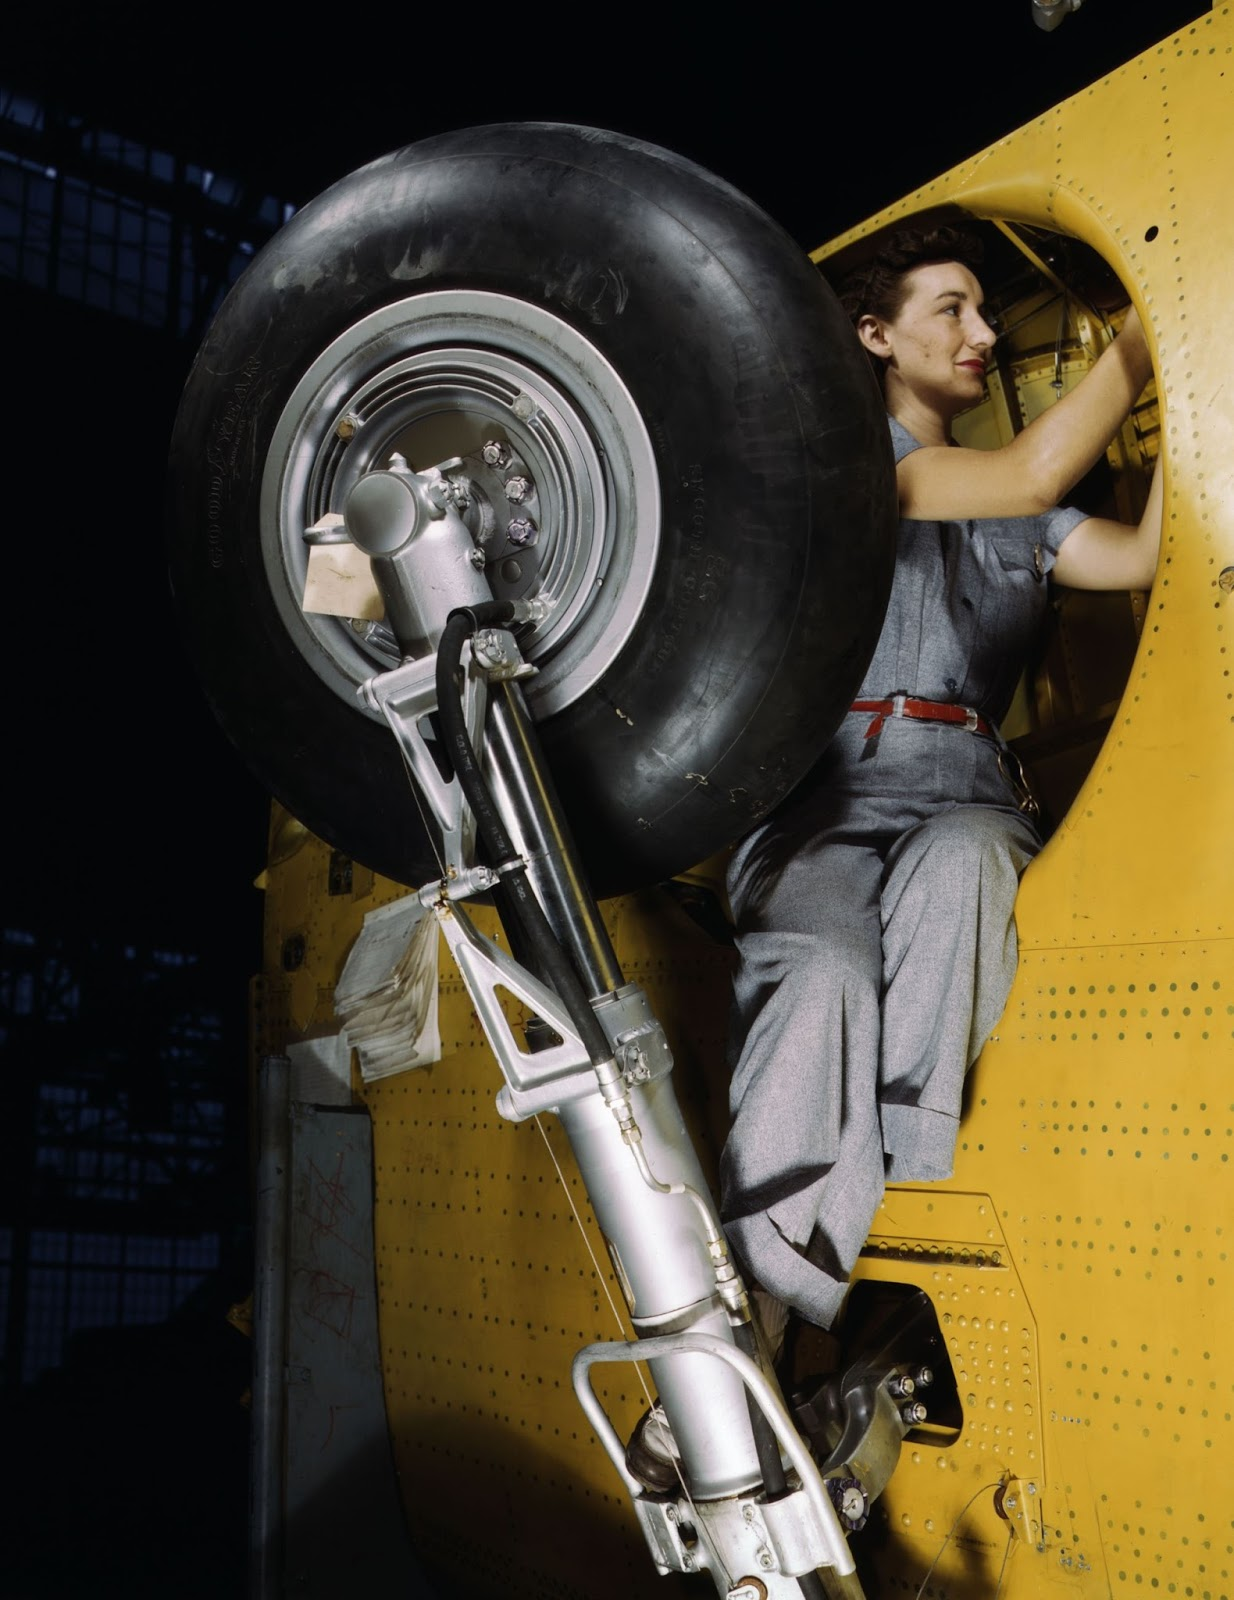 Alfred Palmer - Woman Working on a Bomber's Wheel Well, 1943